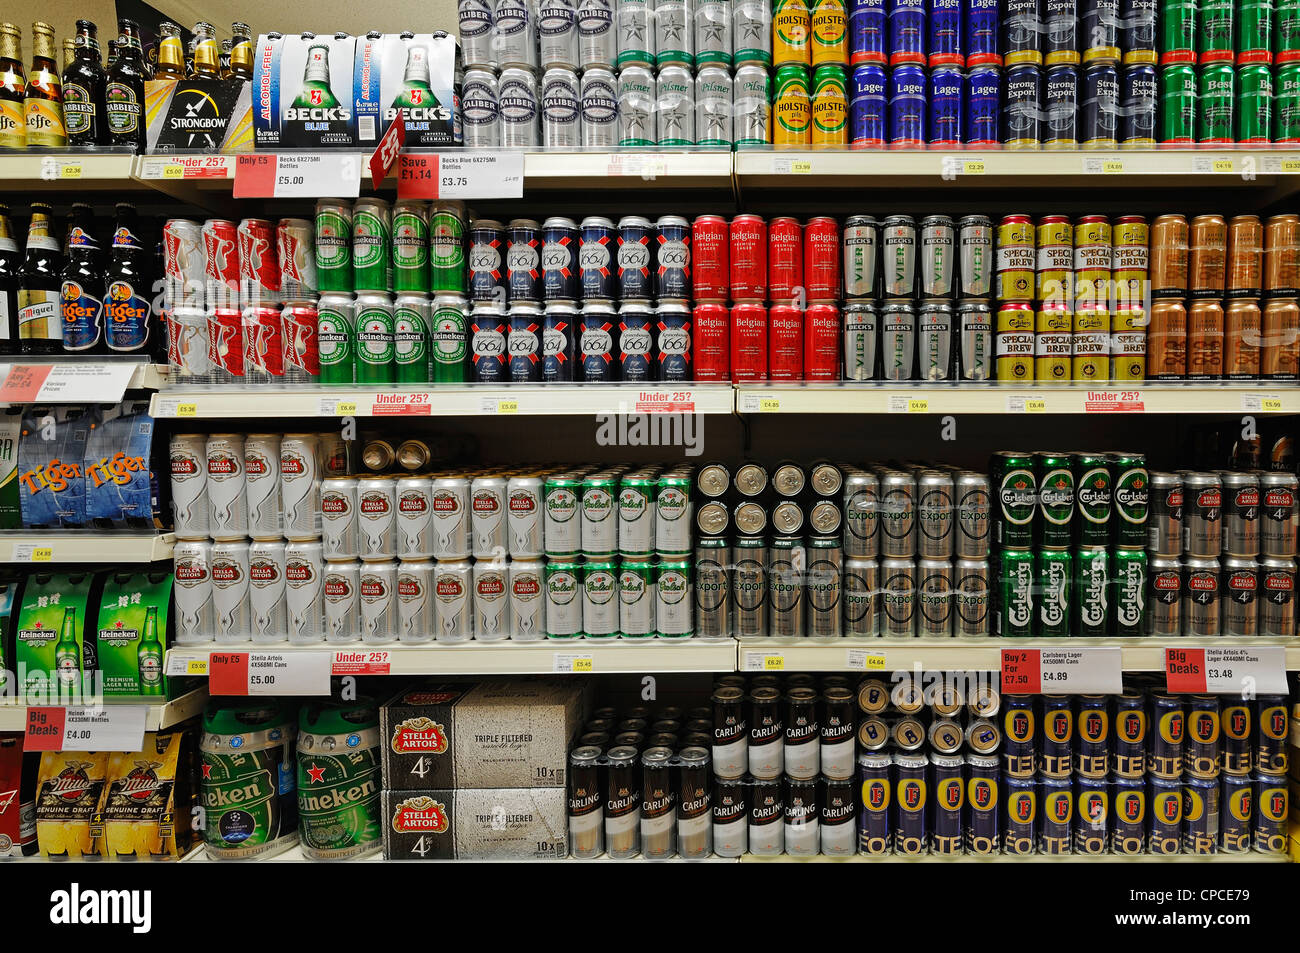 Beer on the Shelves of a Supermarket, UK. - Stock Image